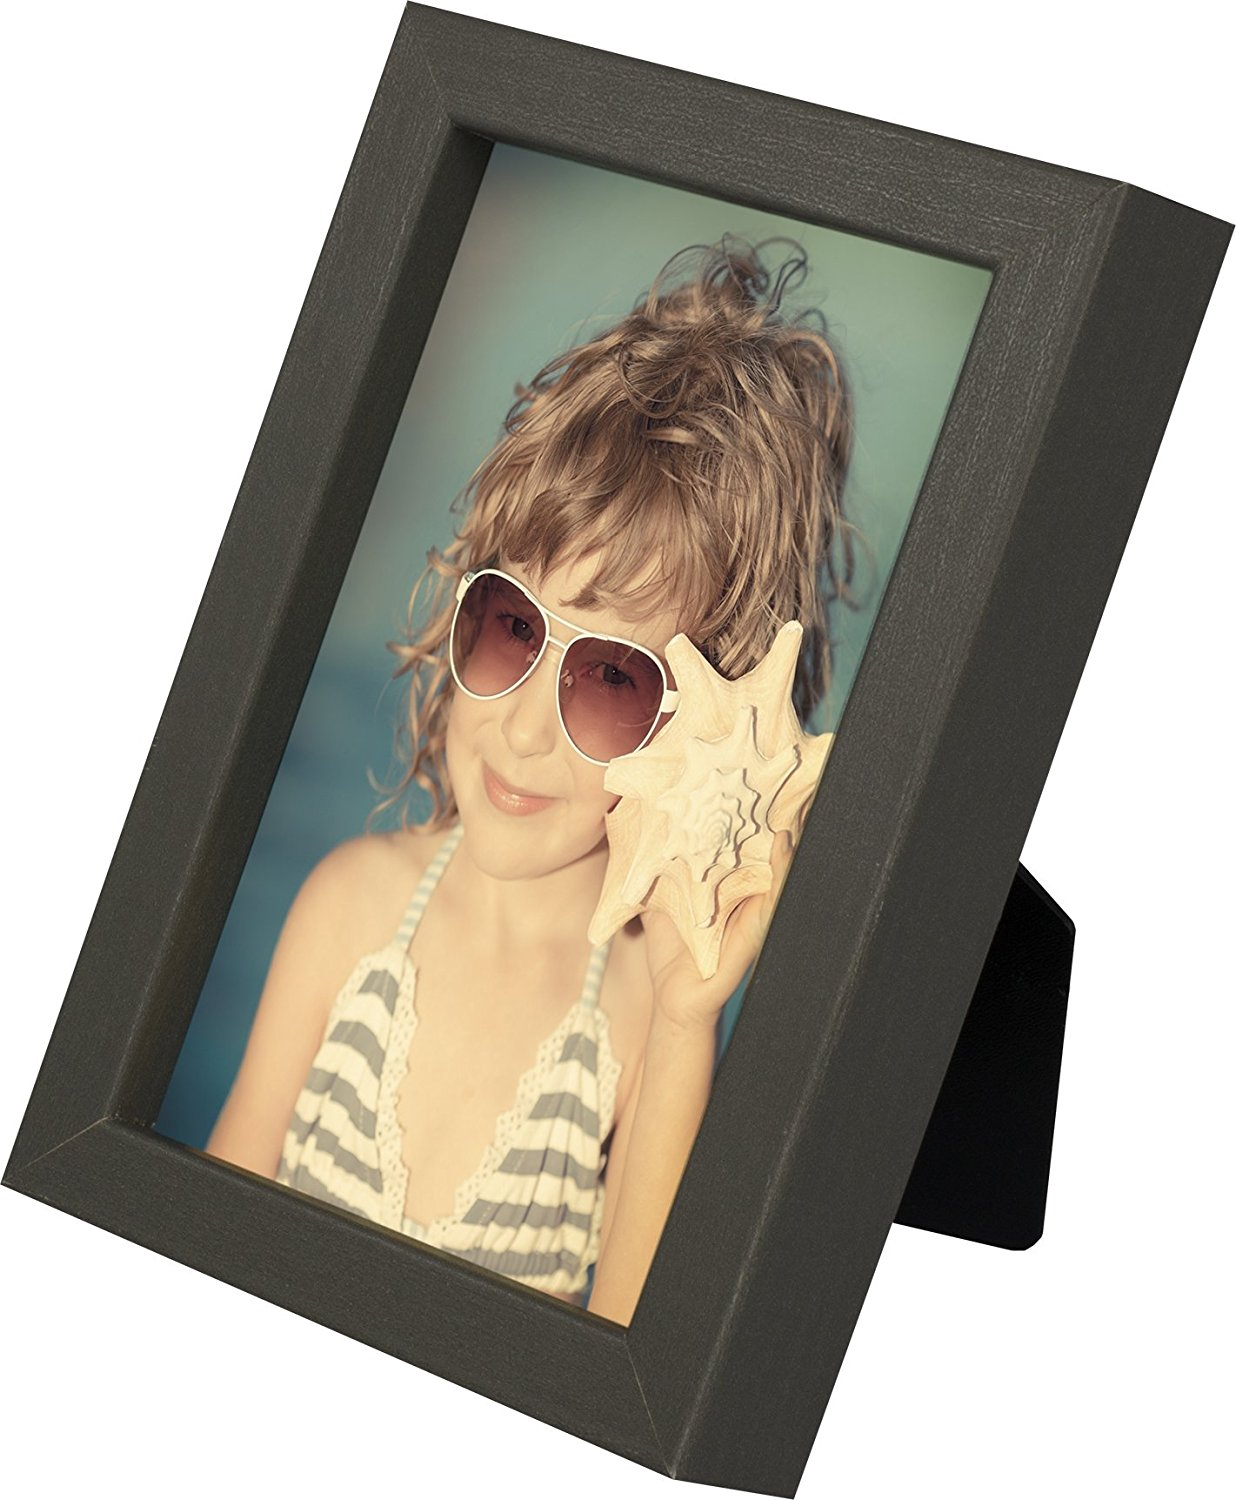 4 x 6-Inch Picture Photo Frame, GREY